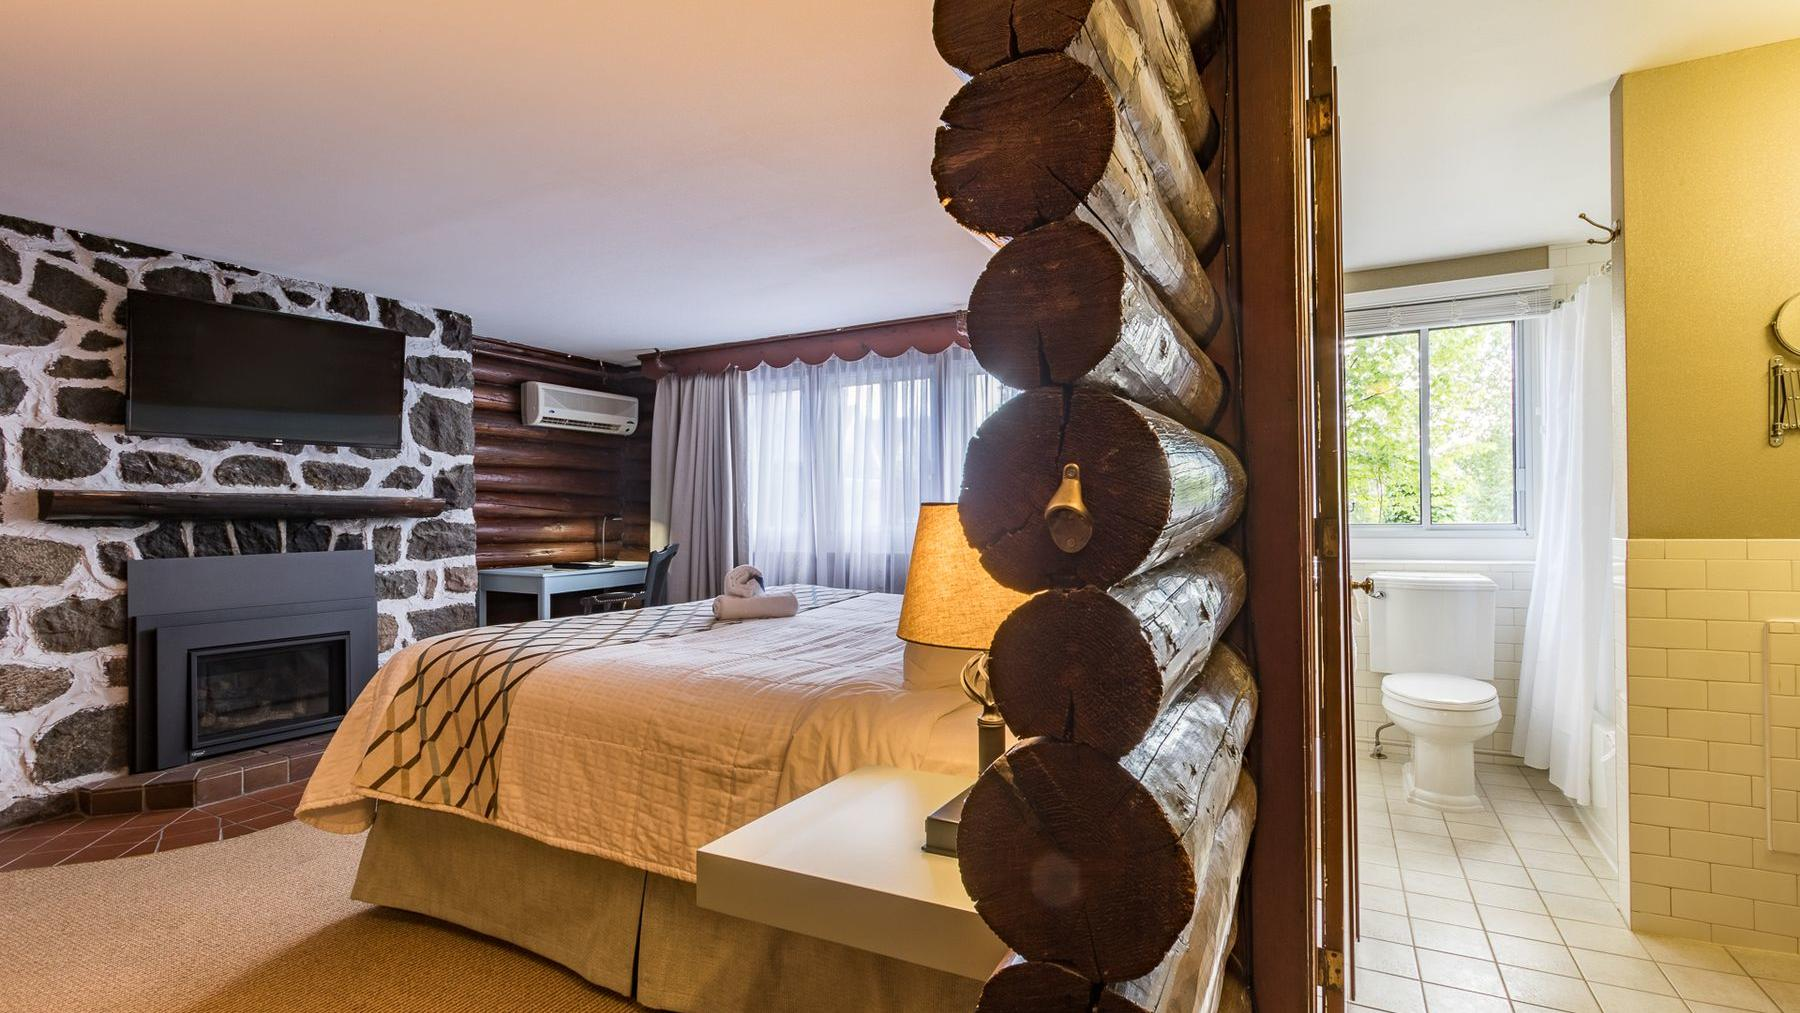 A wall made of logs divides a modern bathroom and bedroom in a hotel